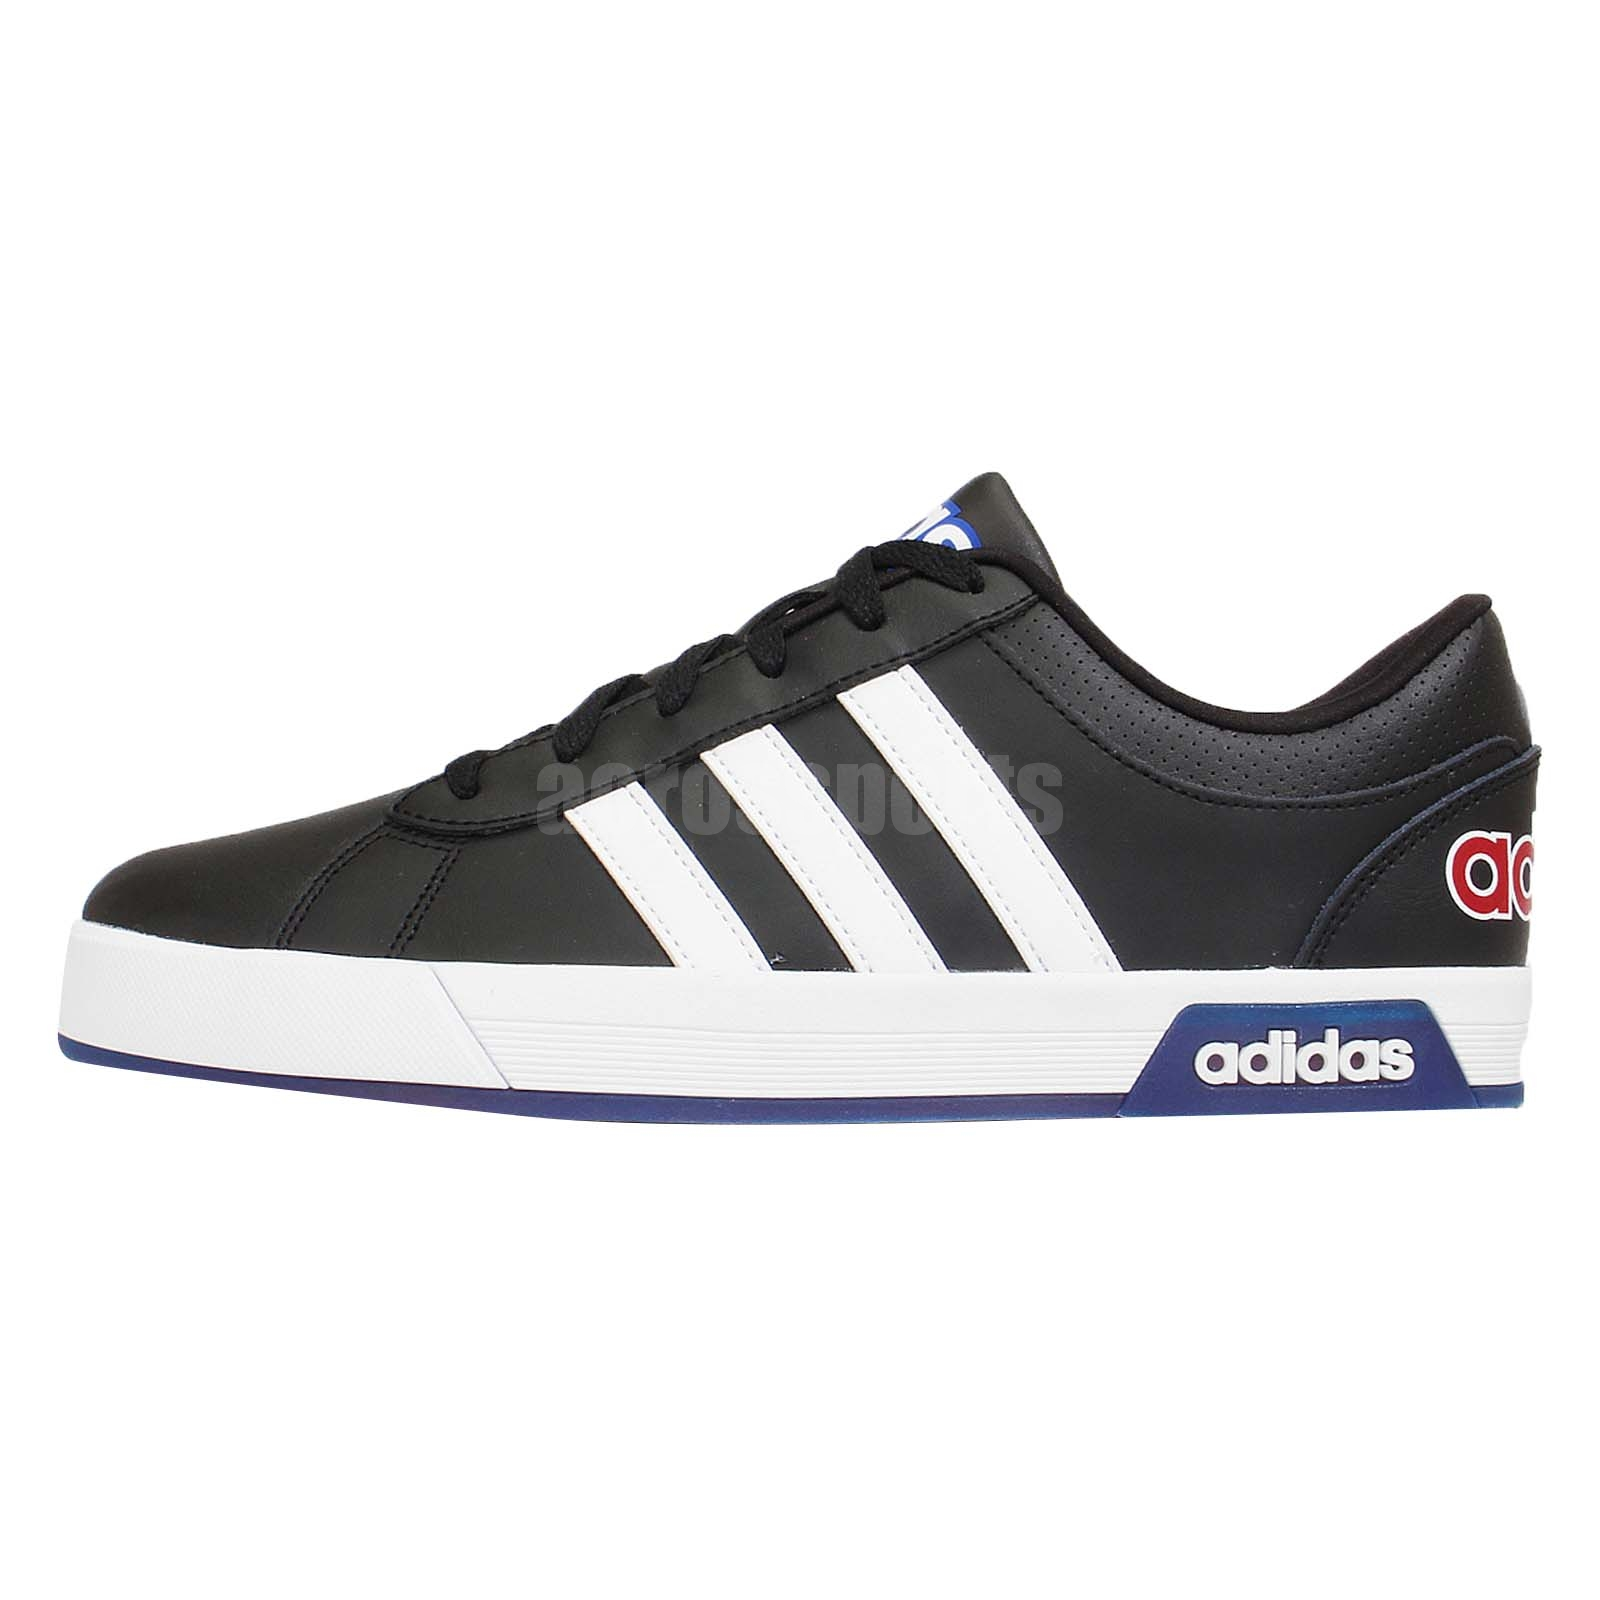 adidas neo label daily 9tis black red blue mens casual. Black Bedroom Furniture Sets. Home Design Ideas